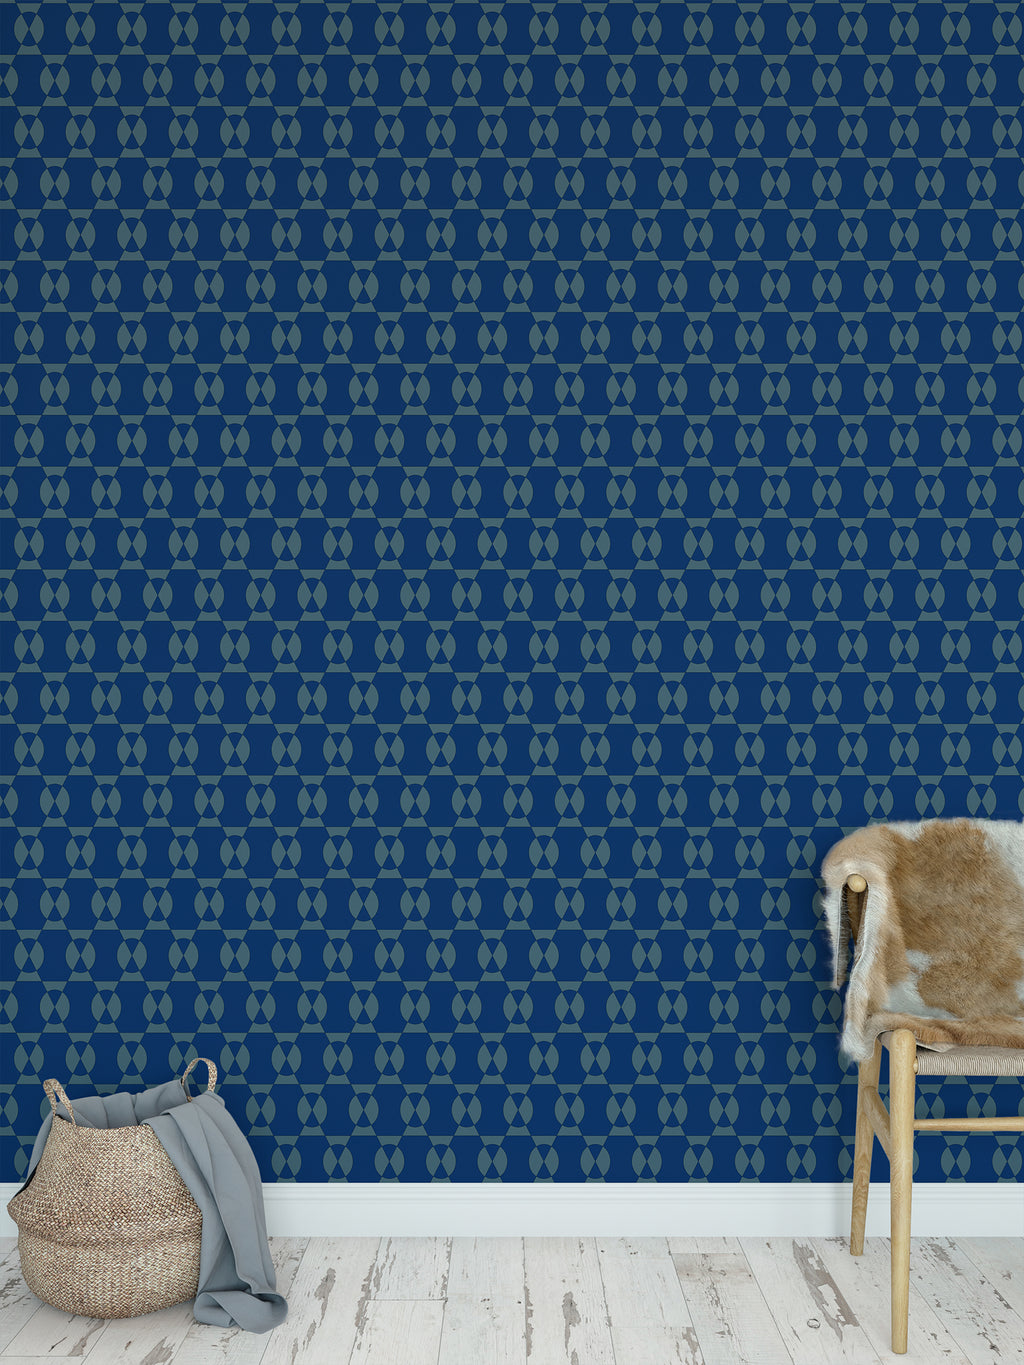 JOYFUL BLUE Peel and Stick Wallpaper By Jackie Reynolds